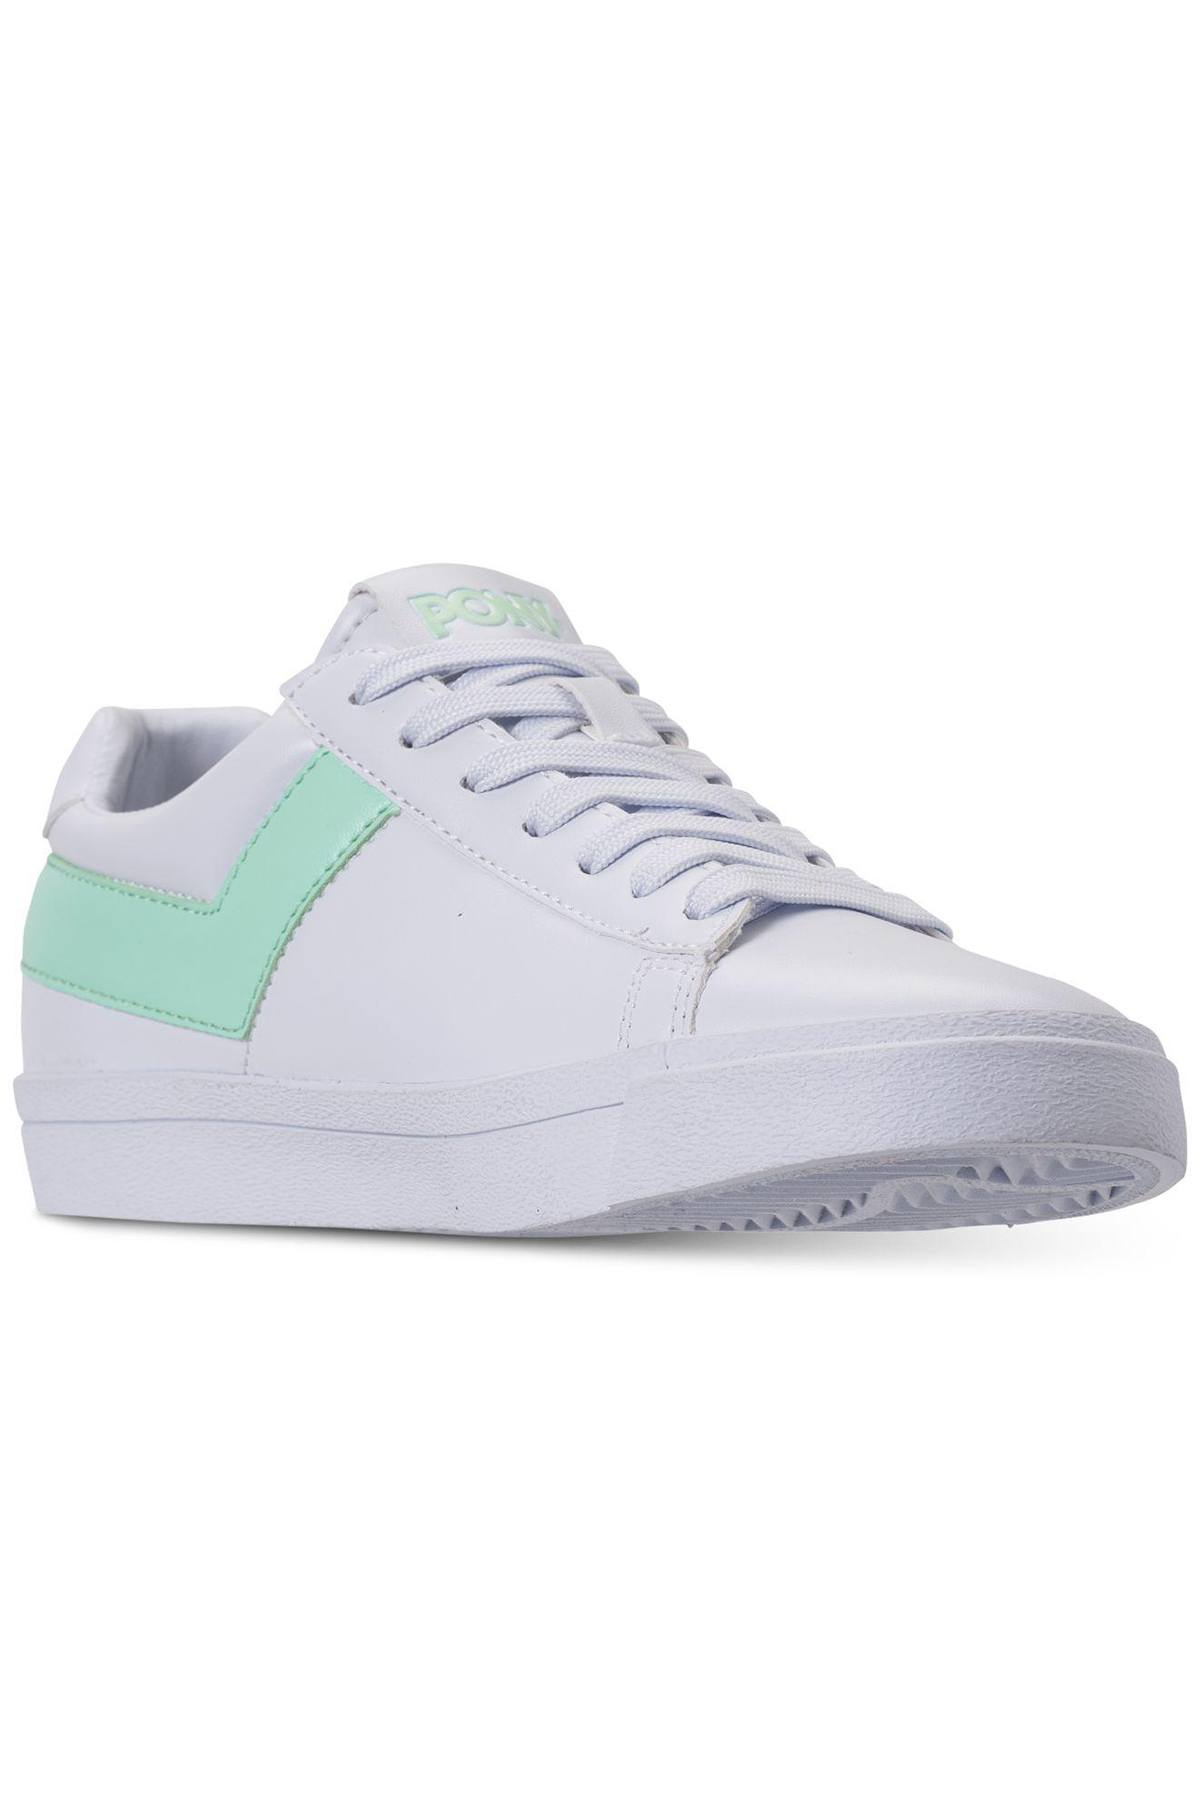 Pony White/Mint Top-Star Lo Core Sneakers